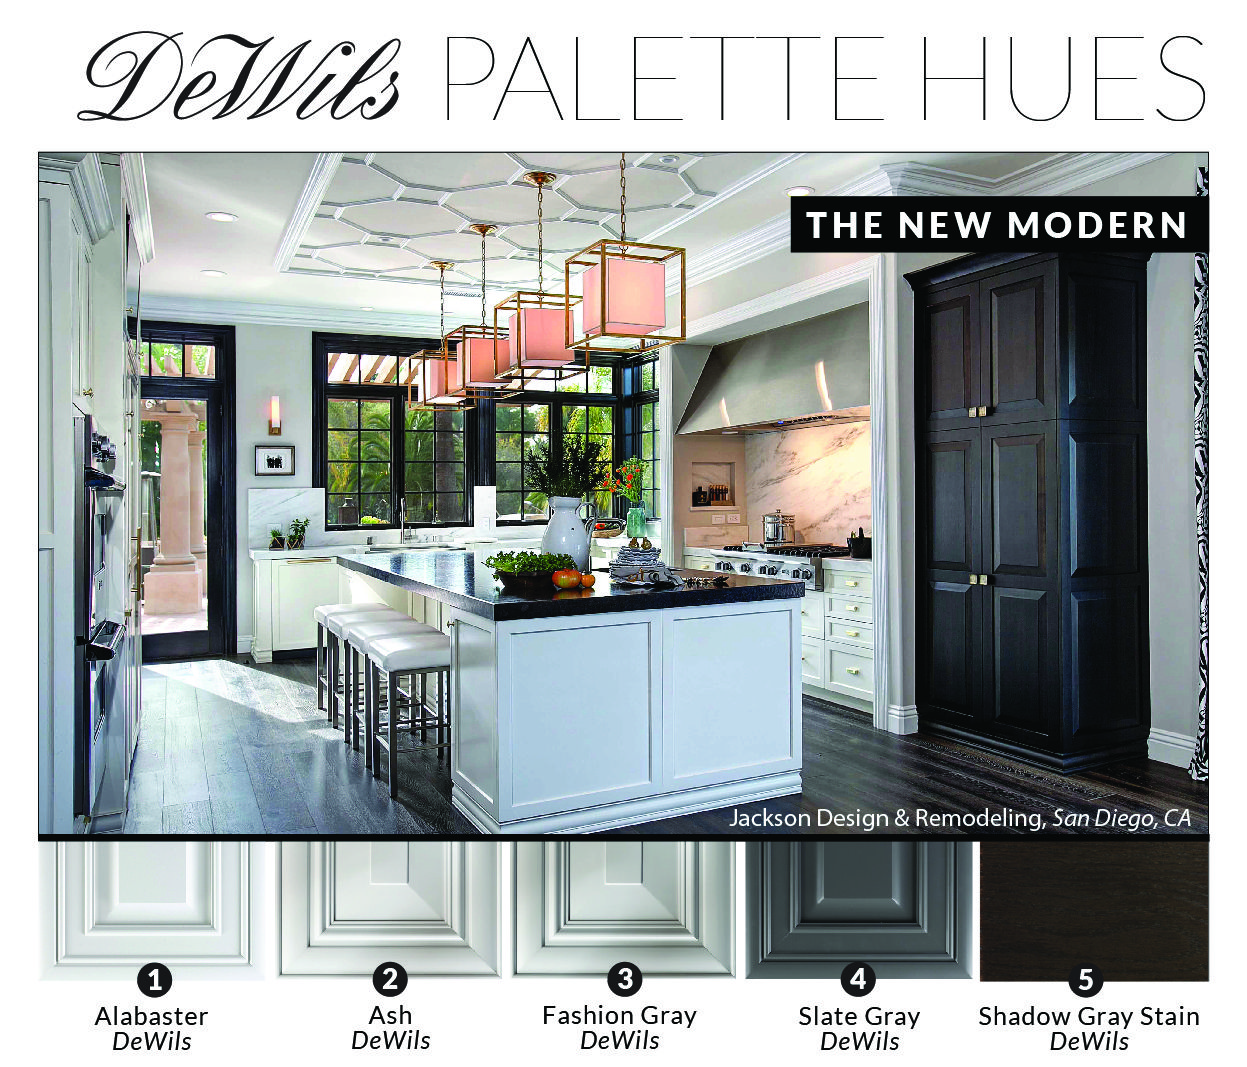 Dewils Custom Cabinetry New Modern Inspired Color Palette A Little More Texture And Color Adds Appeal To Today Custom Cabinetry Cabinet Colors Kitchen Trends